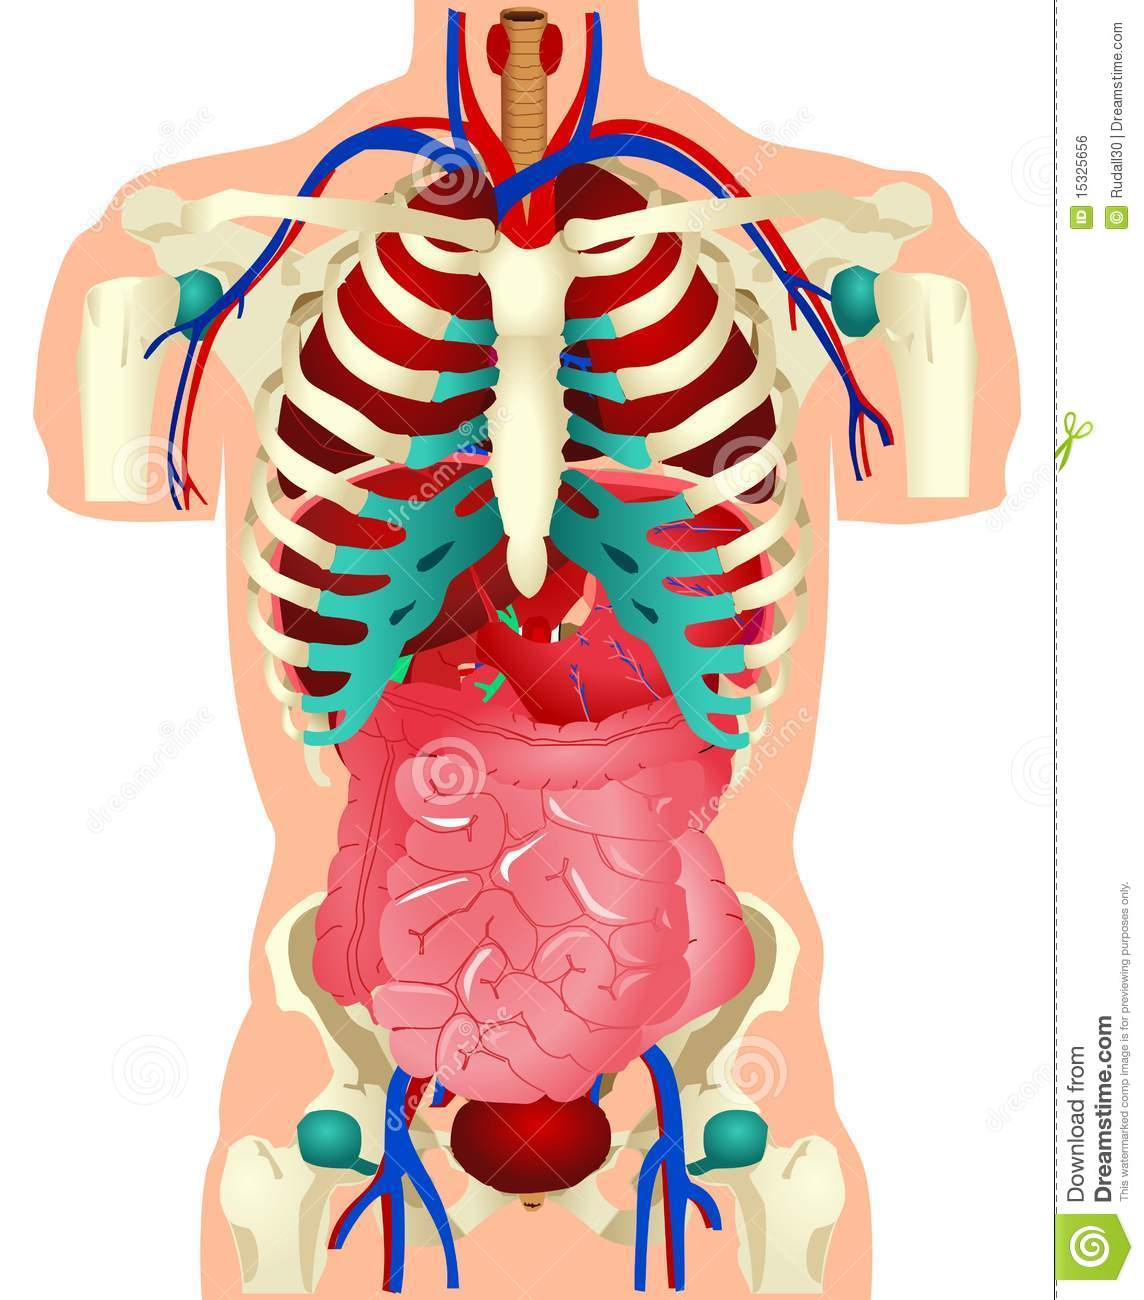 Respiratory System as well Circulatory System 17795753 besides 000test12 in addition 4ef7fc0808b23b48c8d7854bc707ca37 moreover Royalty Free Stock Image Human Organs Image15325656. on circulatory system drawing